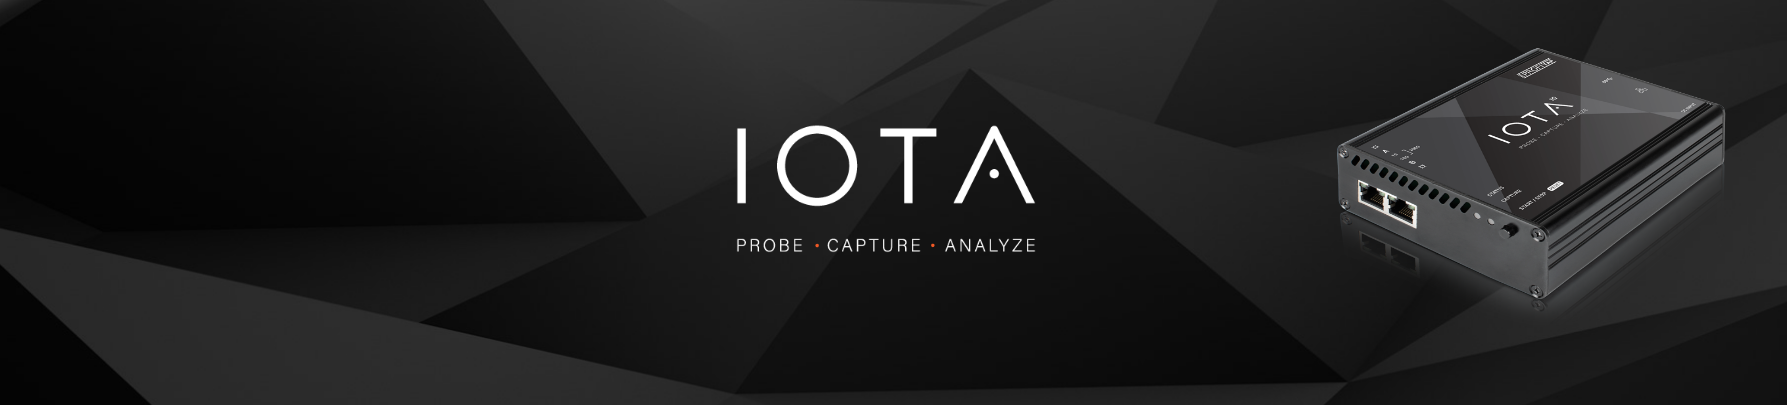 Profitap IOTA - All in one Network Analysis Solution